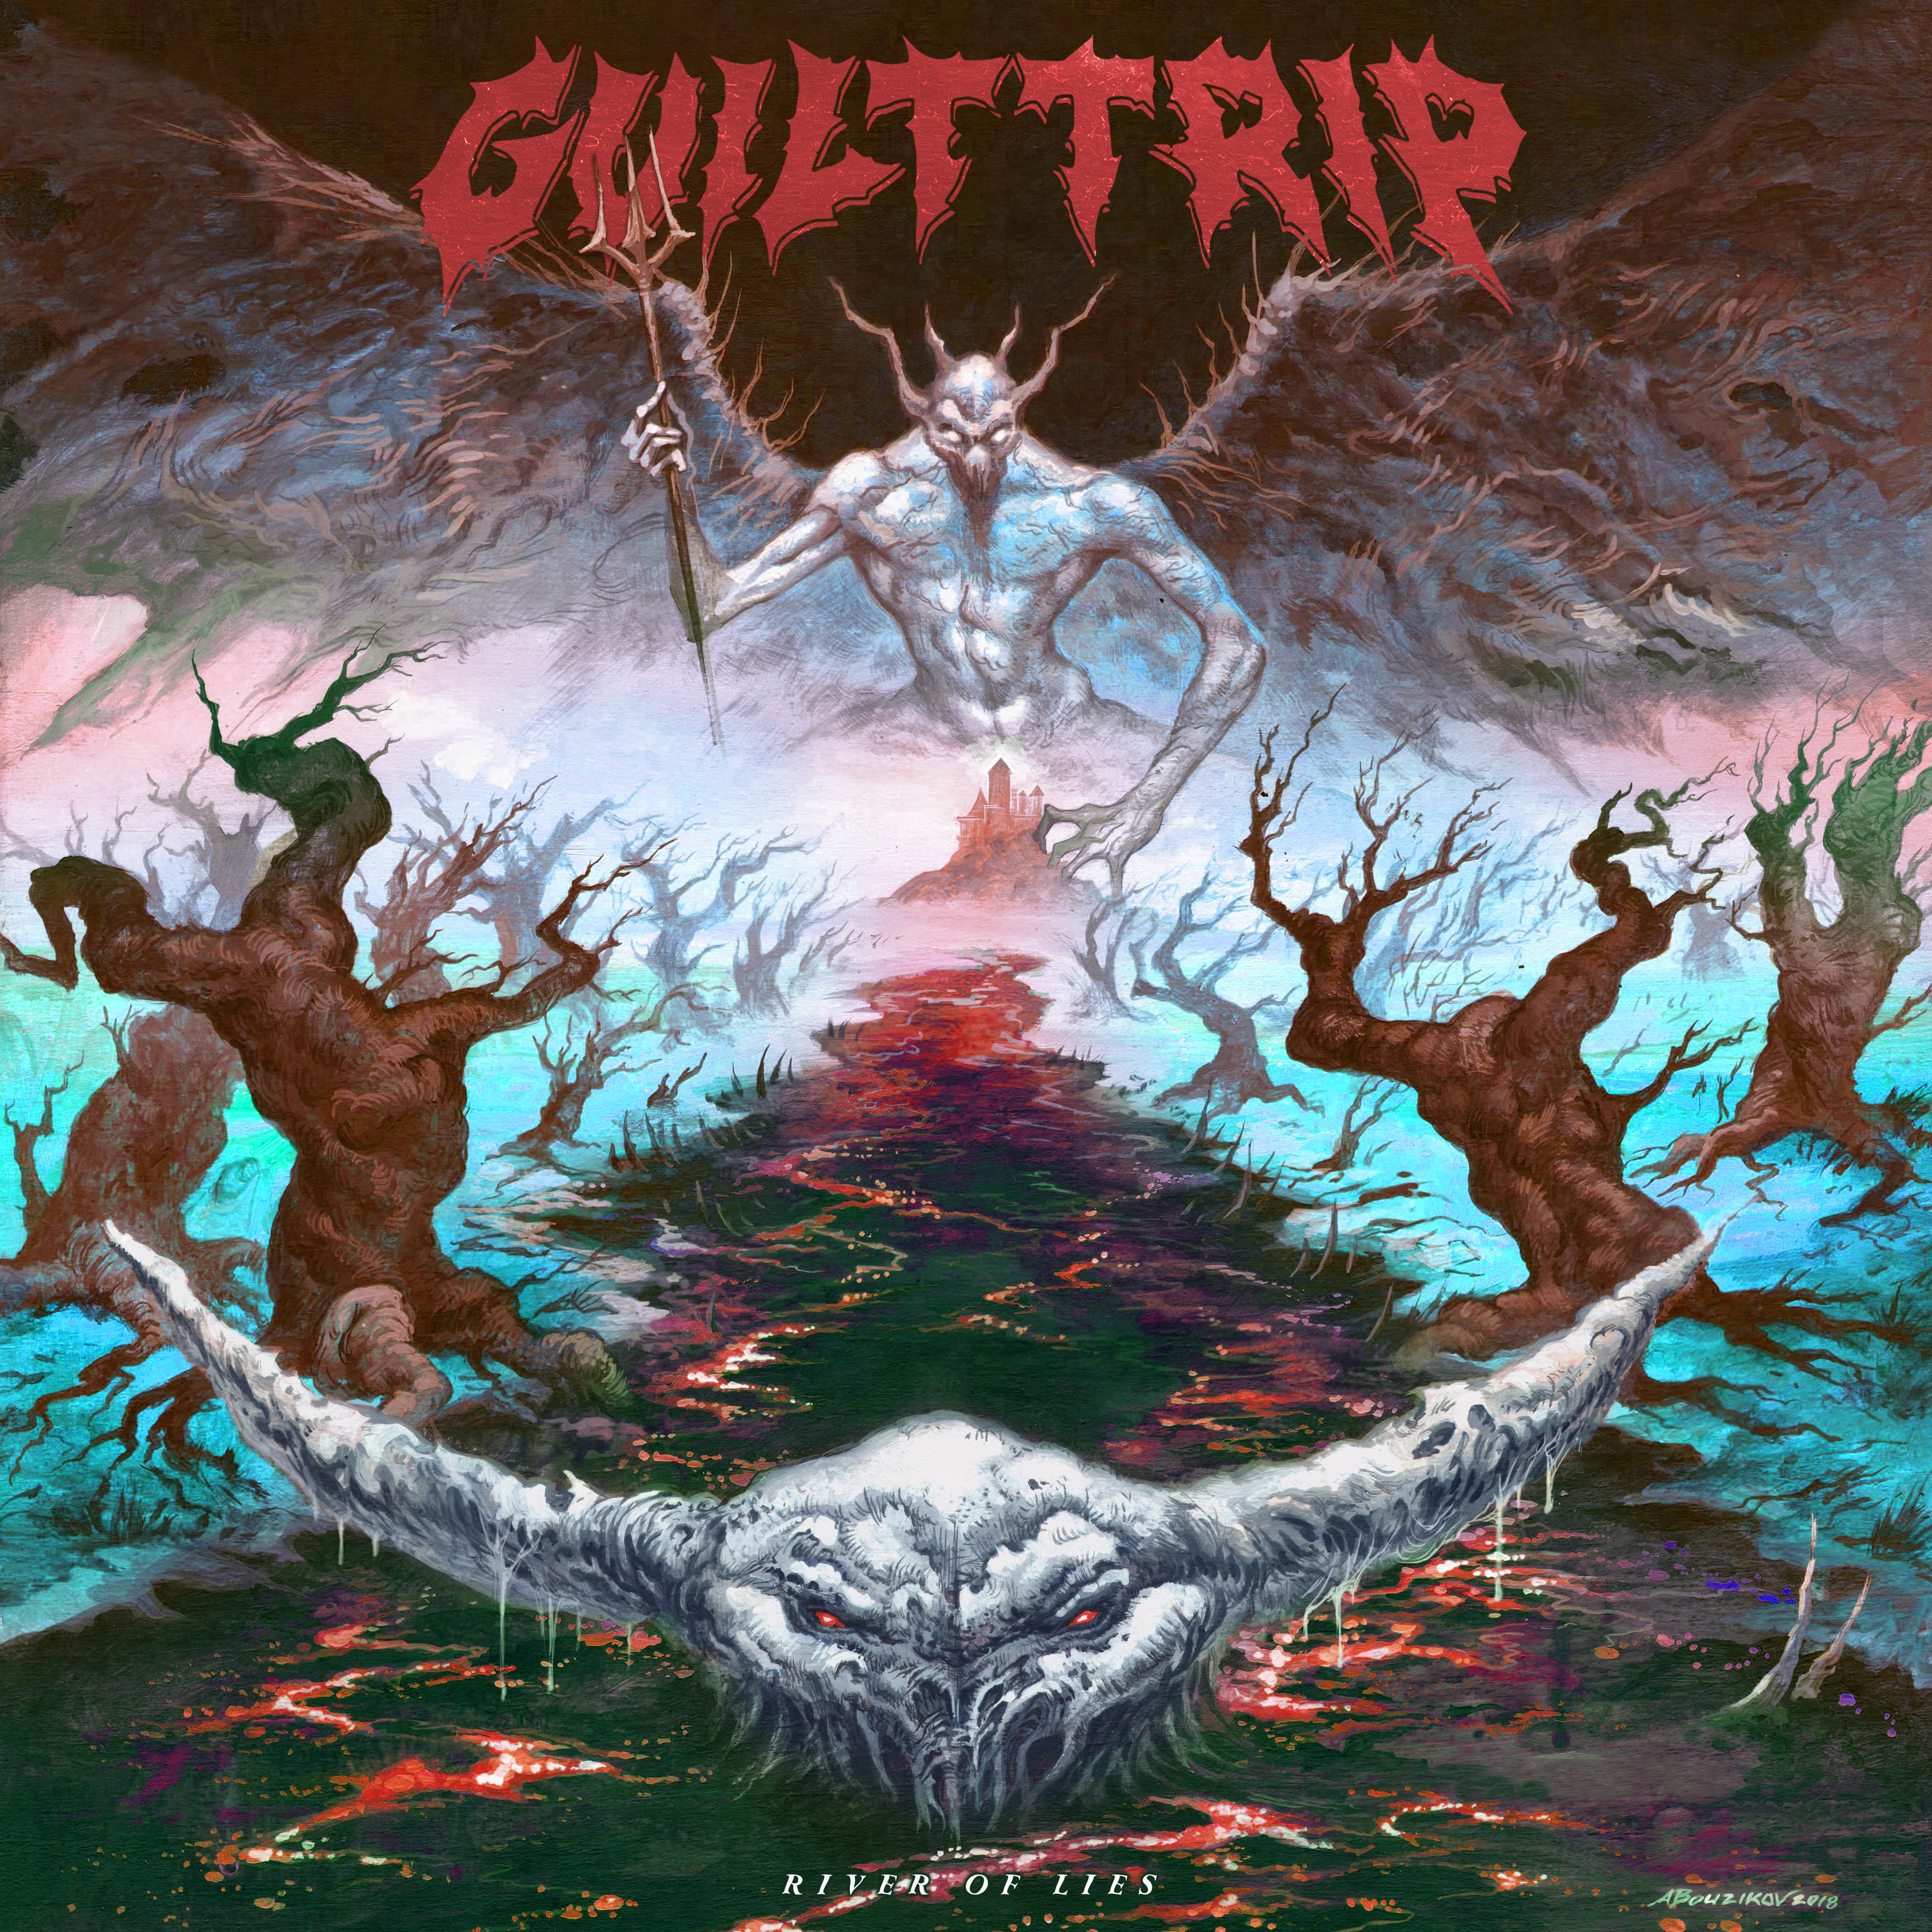 guilt-trip-river-of-lies-ein-album-review